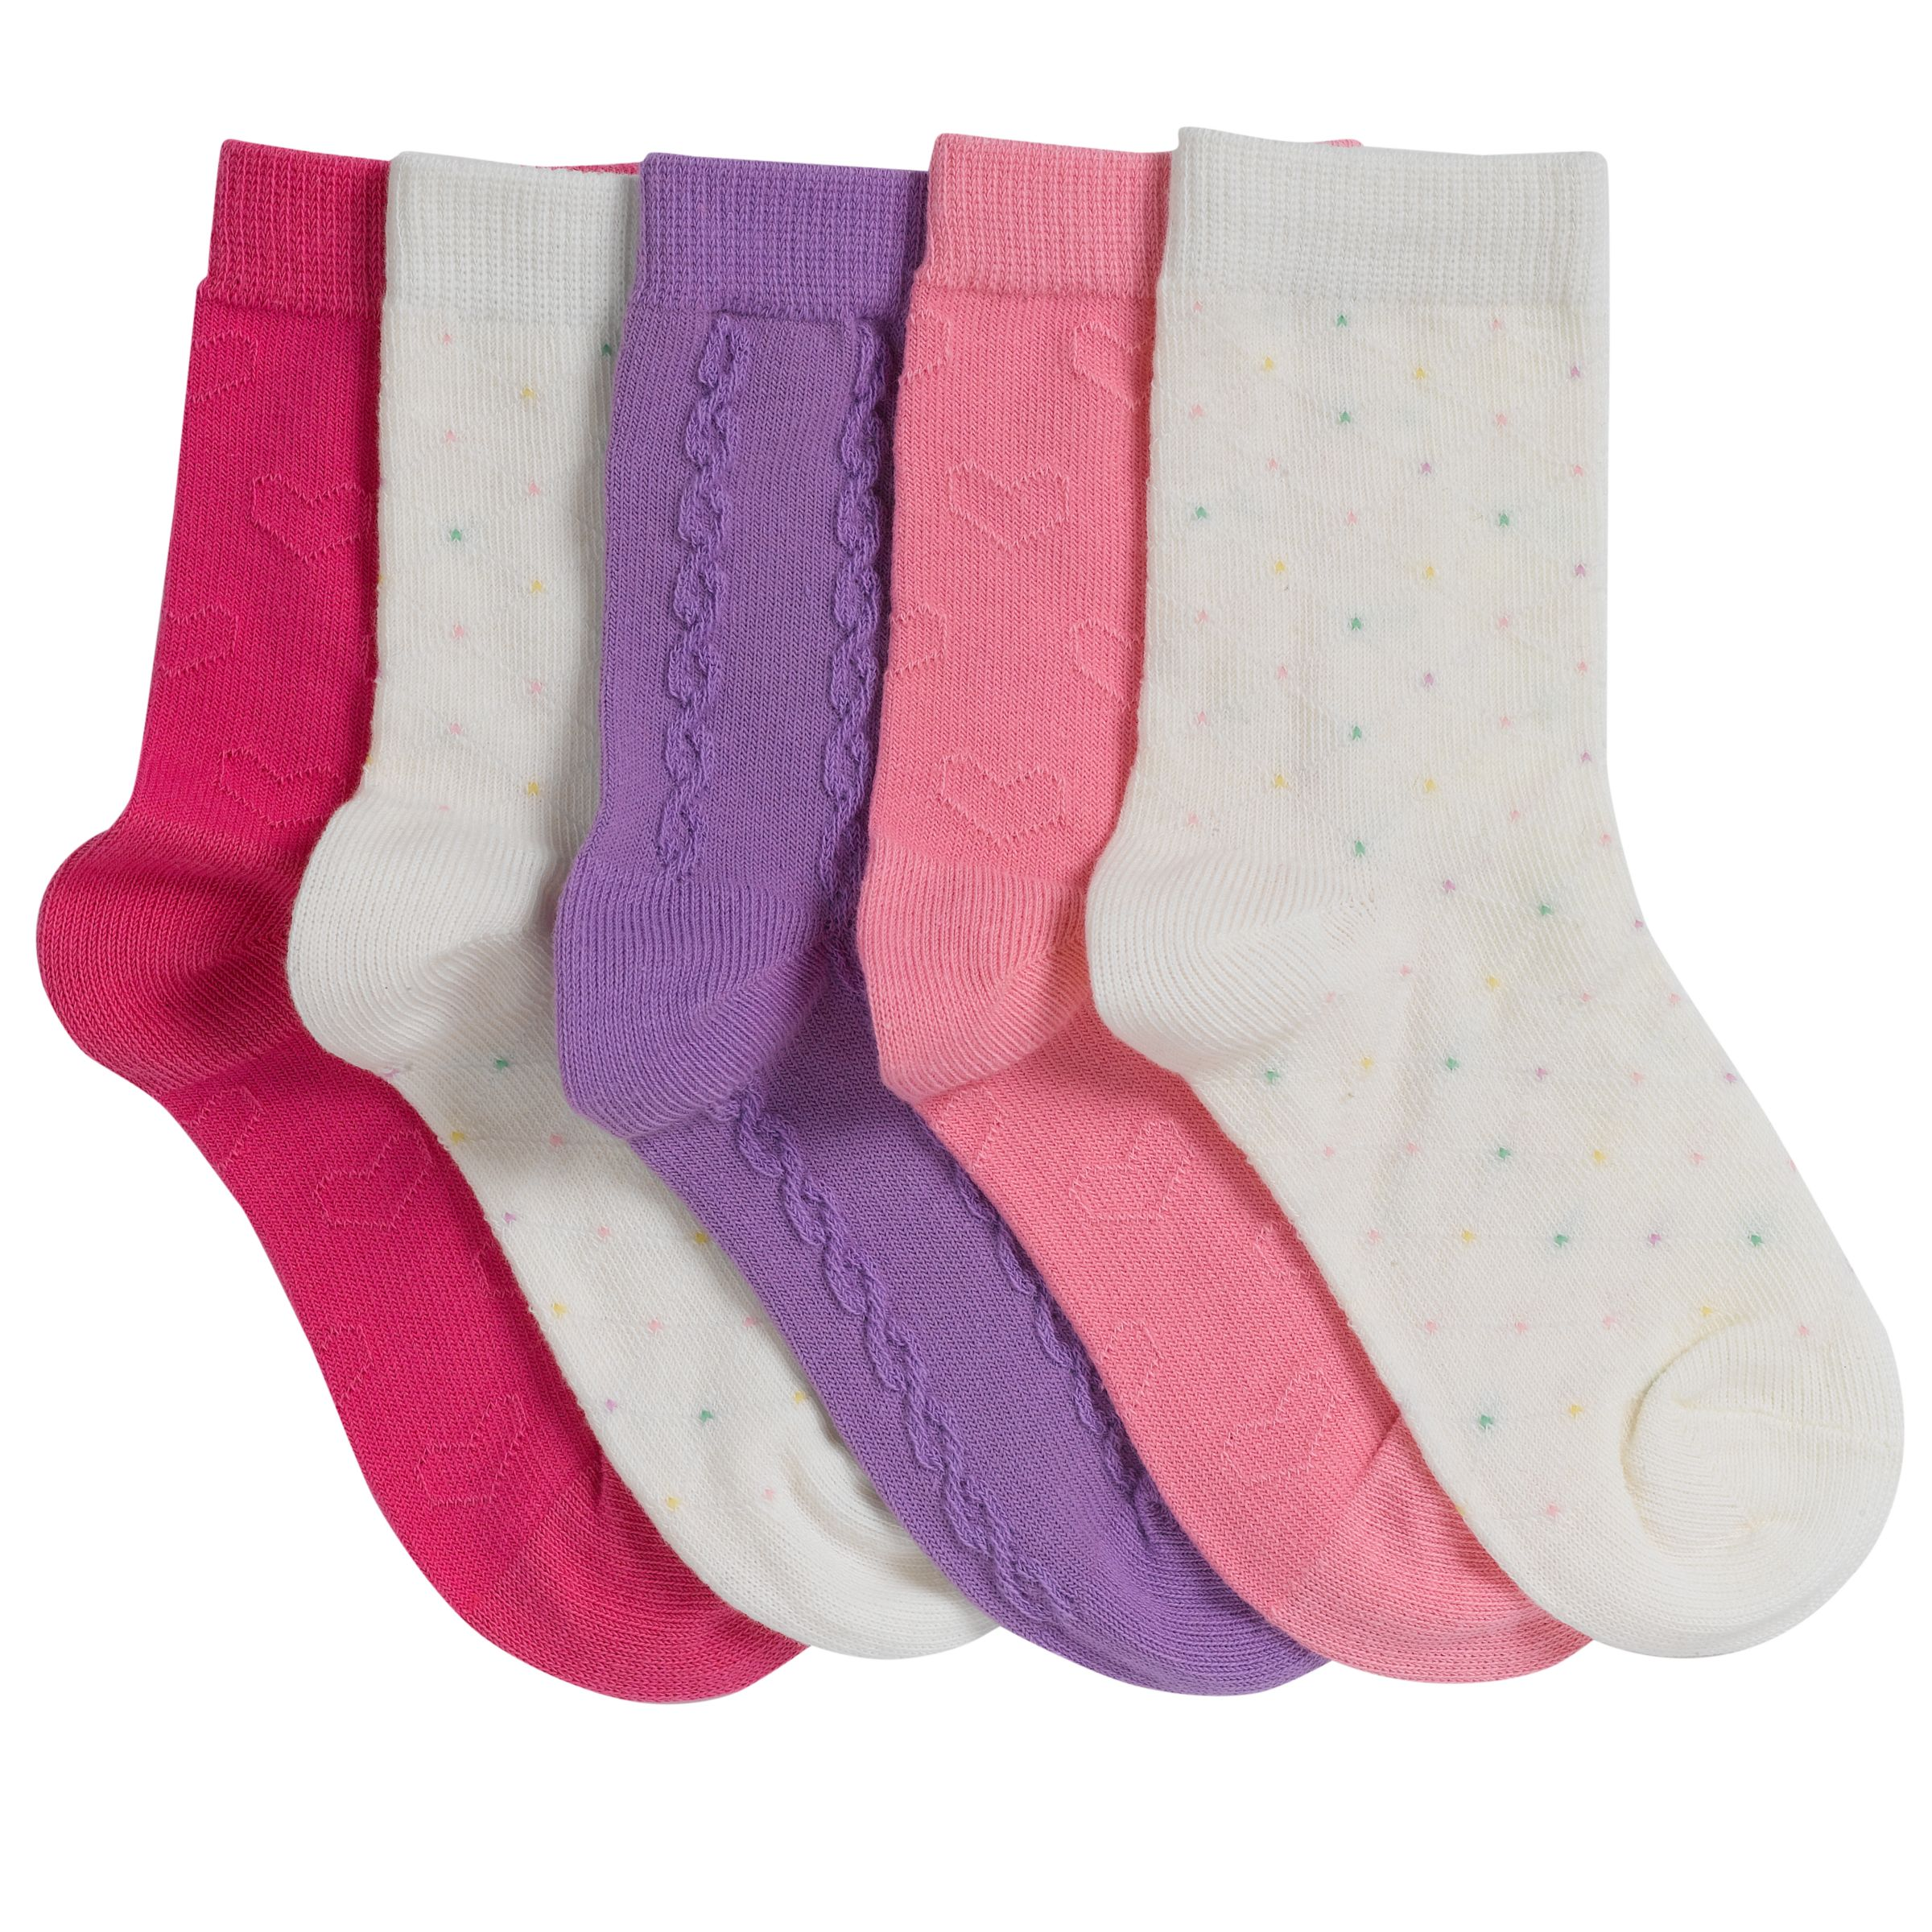 John Lewis Girl Textured Socks, Pack of 5, Pastels